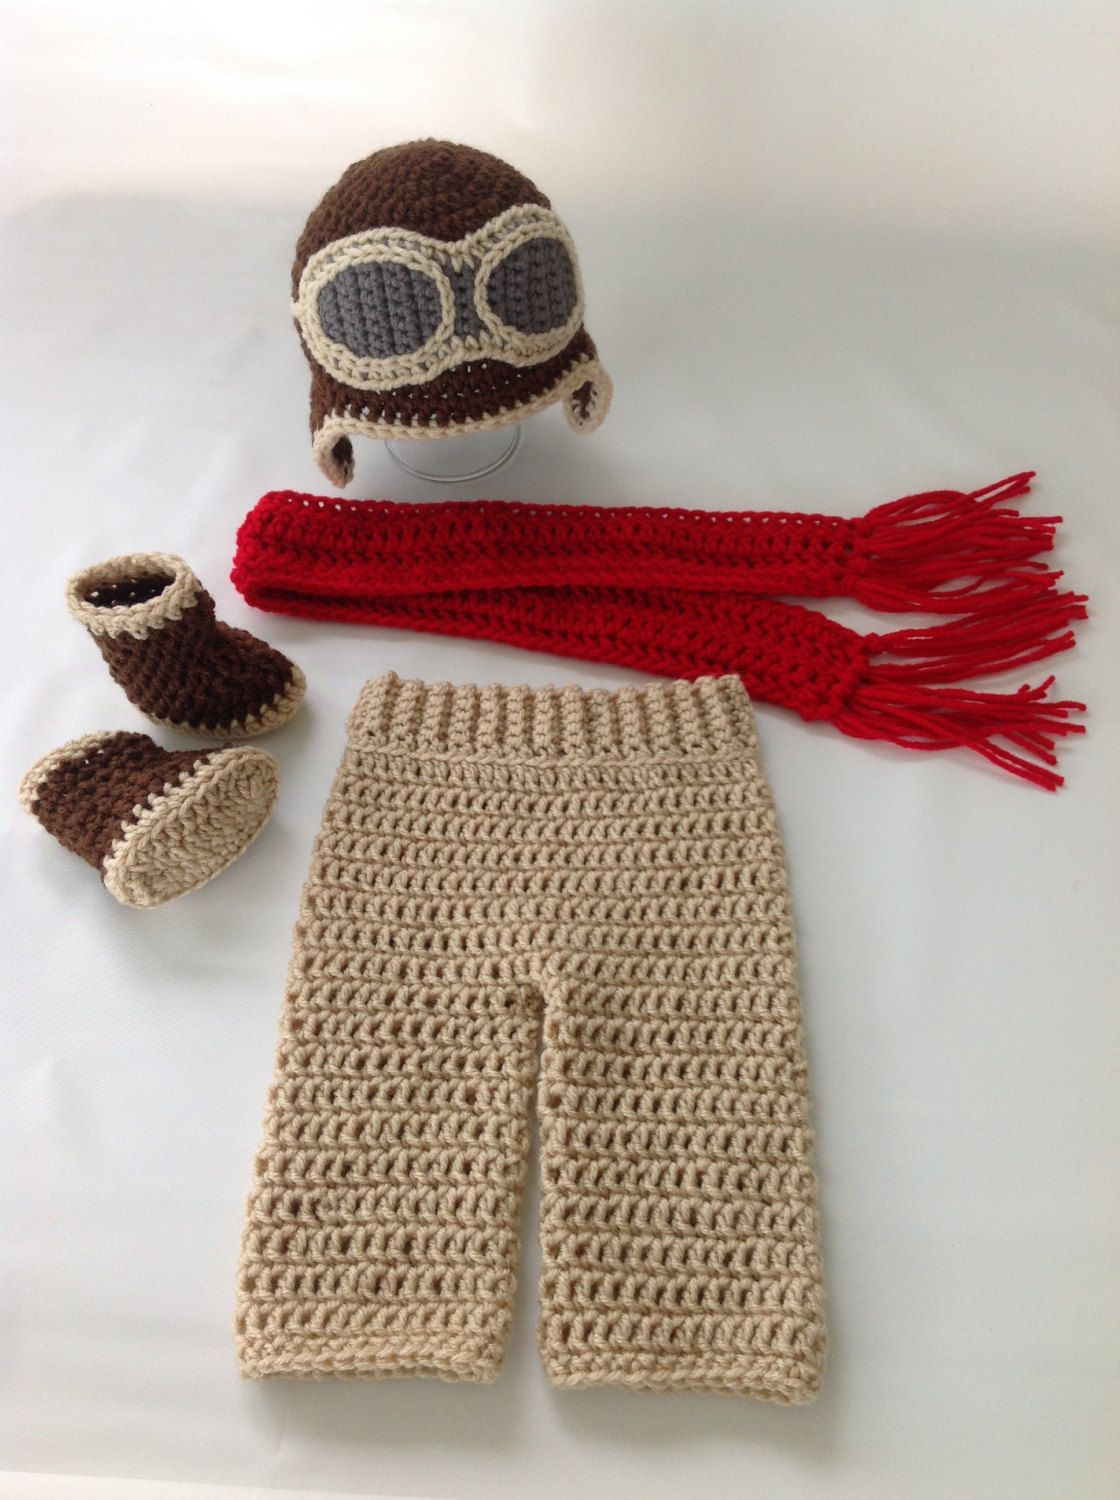 887a6ead9f91 Baby Aviator Outfit - Crochet Aviator Costume - Baby Pilot Costume - Crochet  - Photography Prop - Diaper Cover Set w Boots - Made To Order by ...